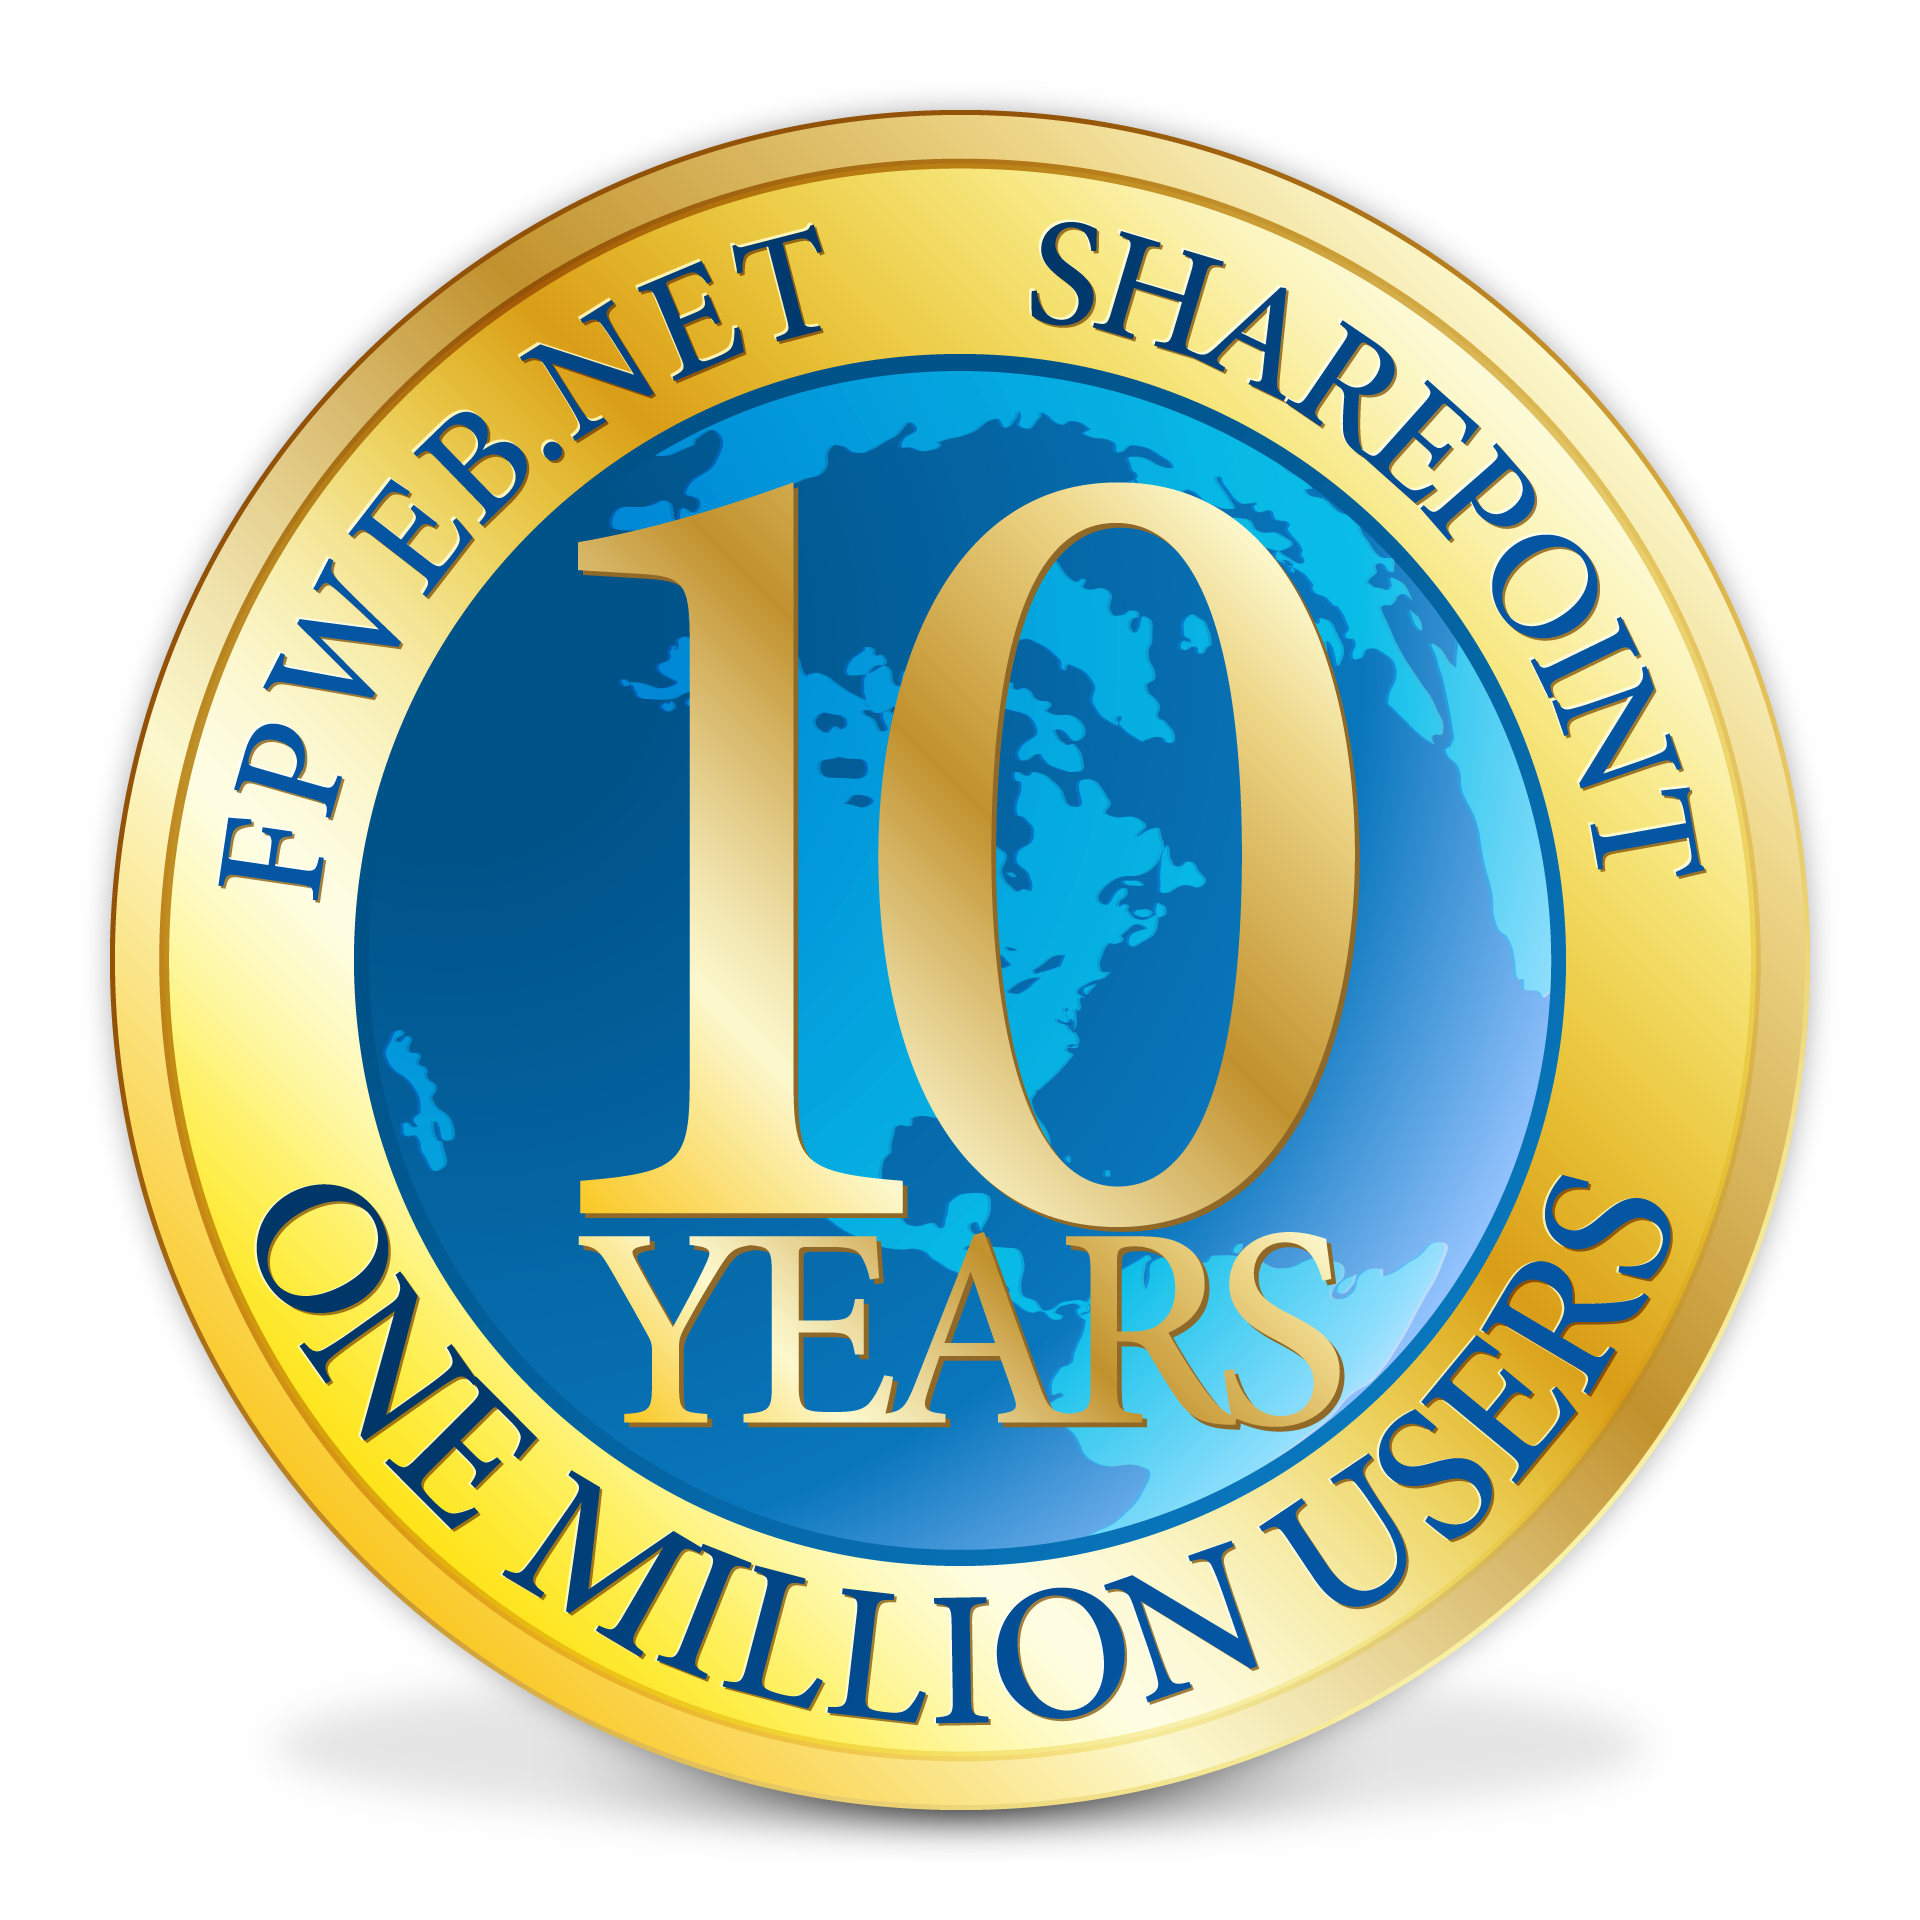 10 years of SharePoint seal